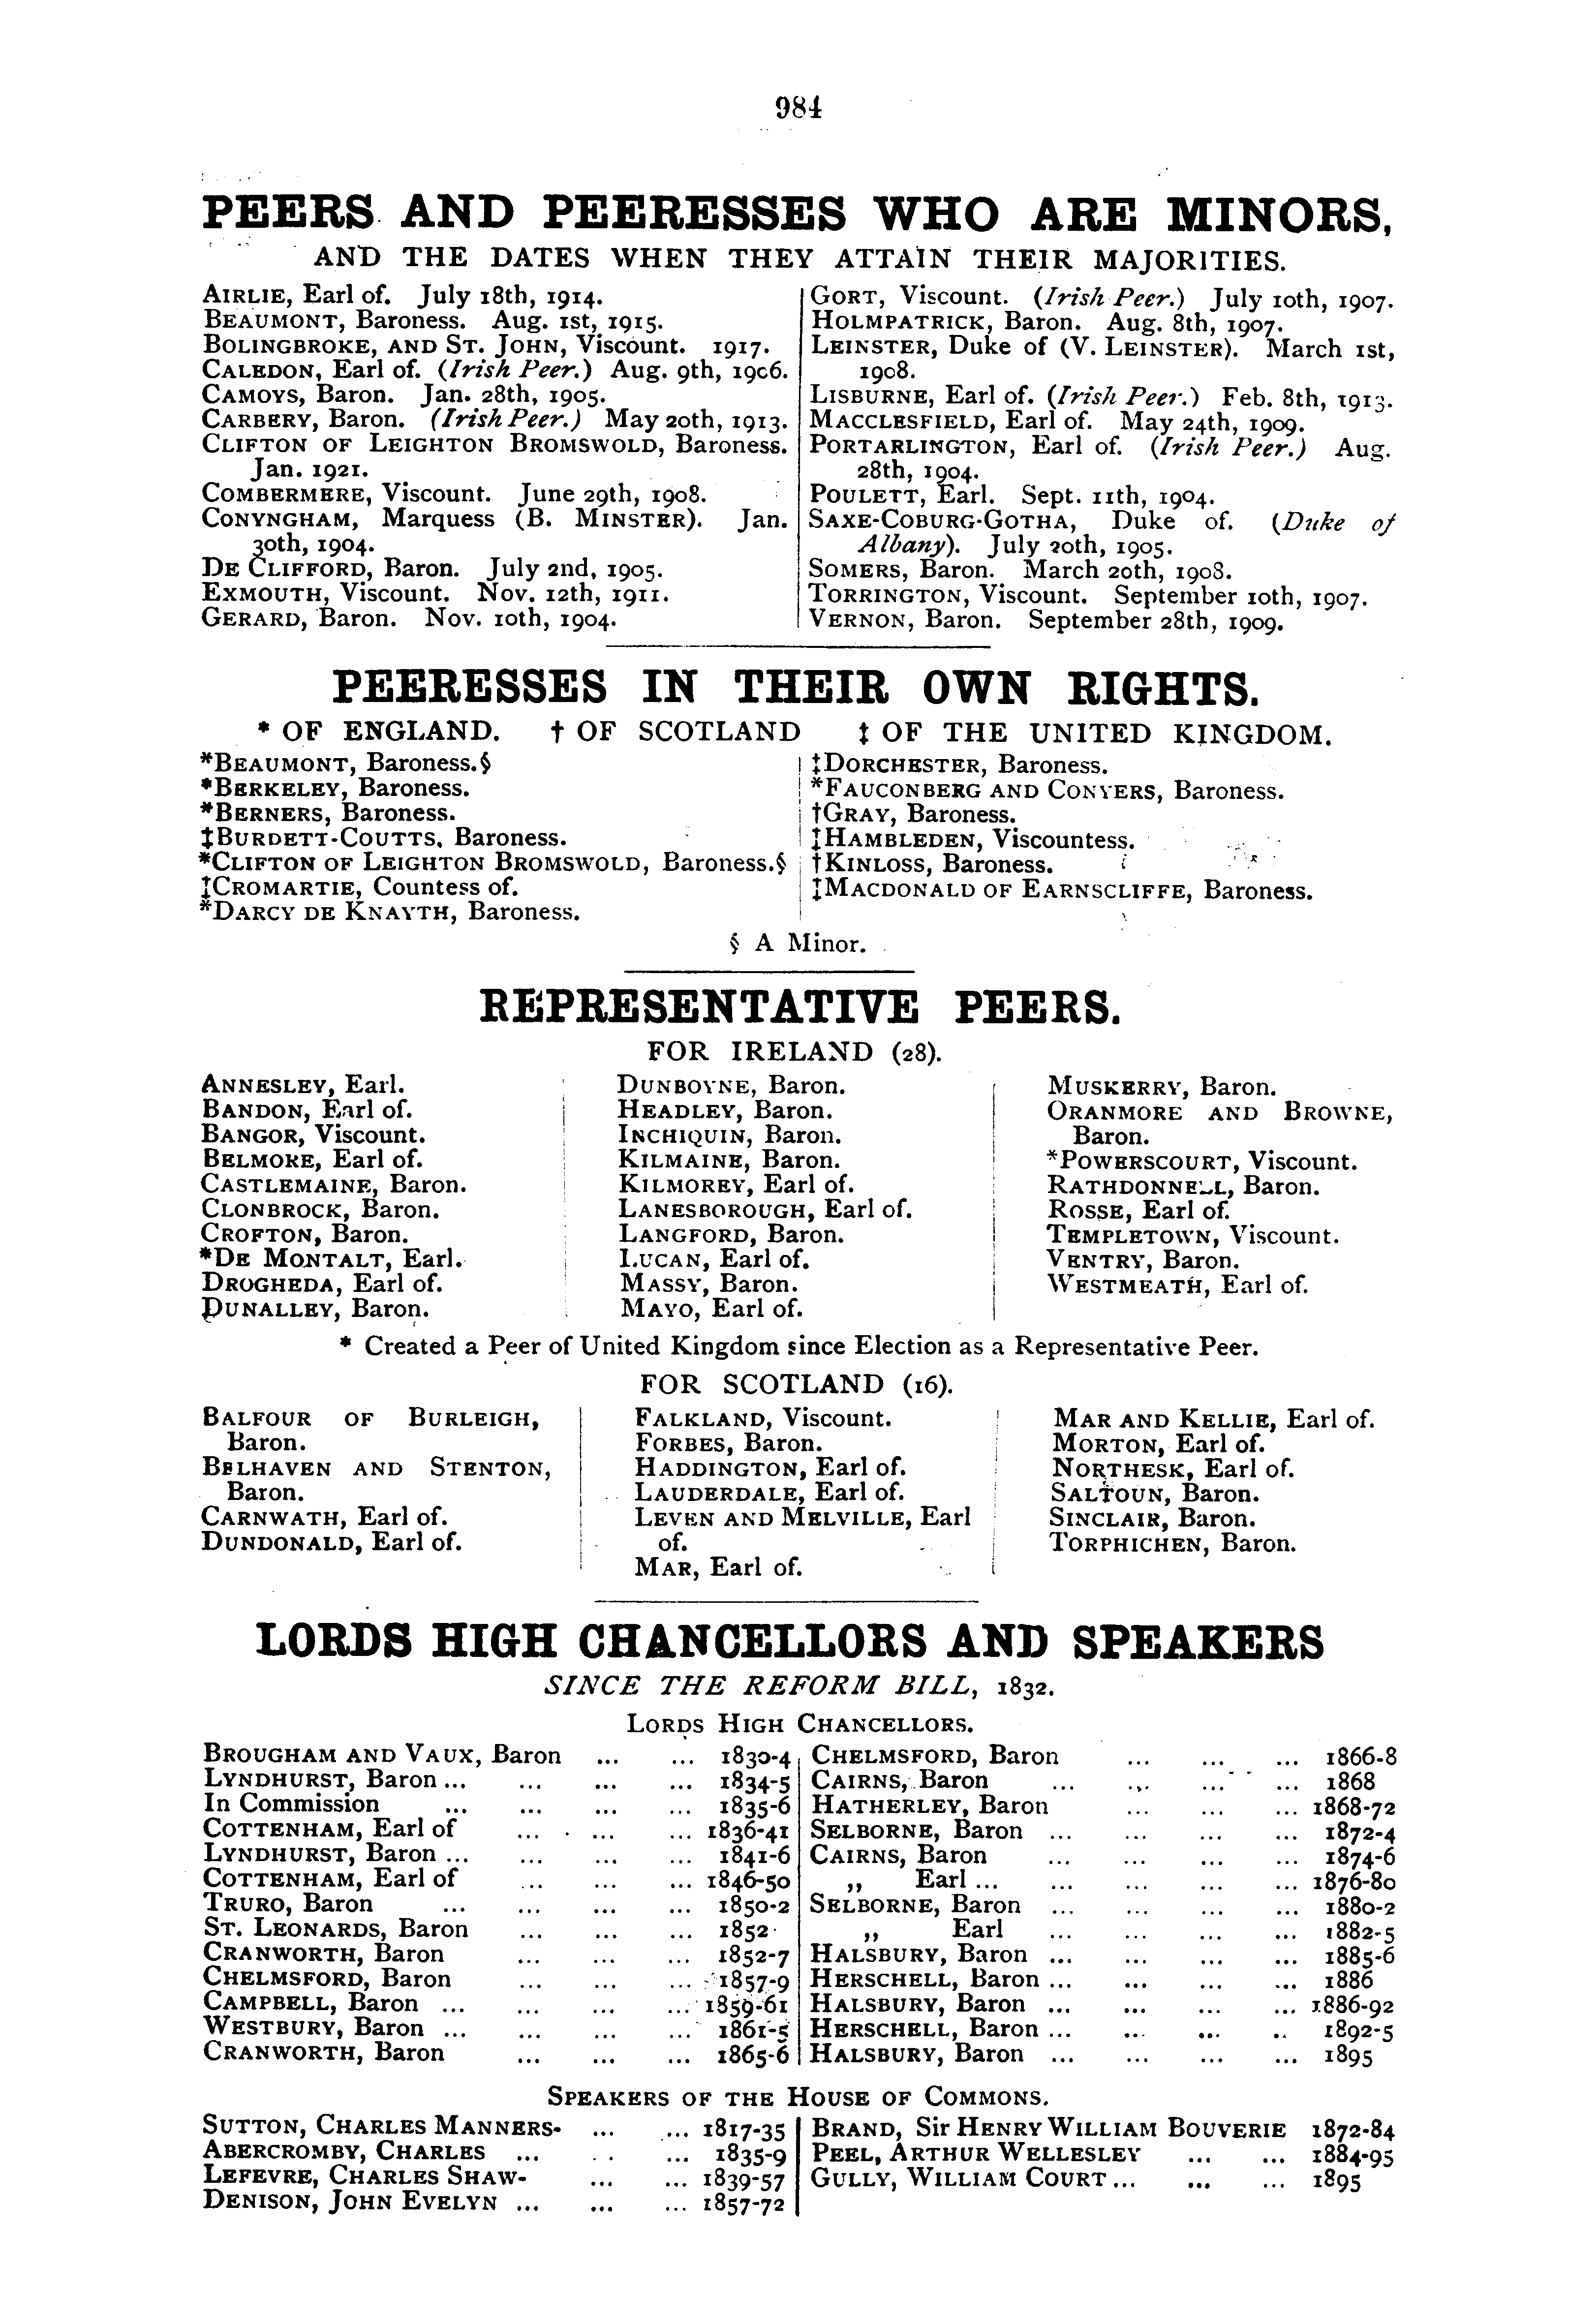 Debrett's Peerage, Baronetage, Knightage and Companionage, 1904 page 984 - click to open larger version in a new window